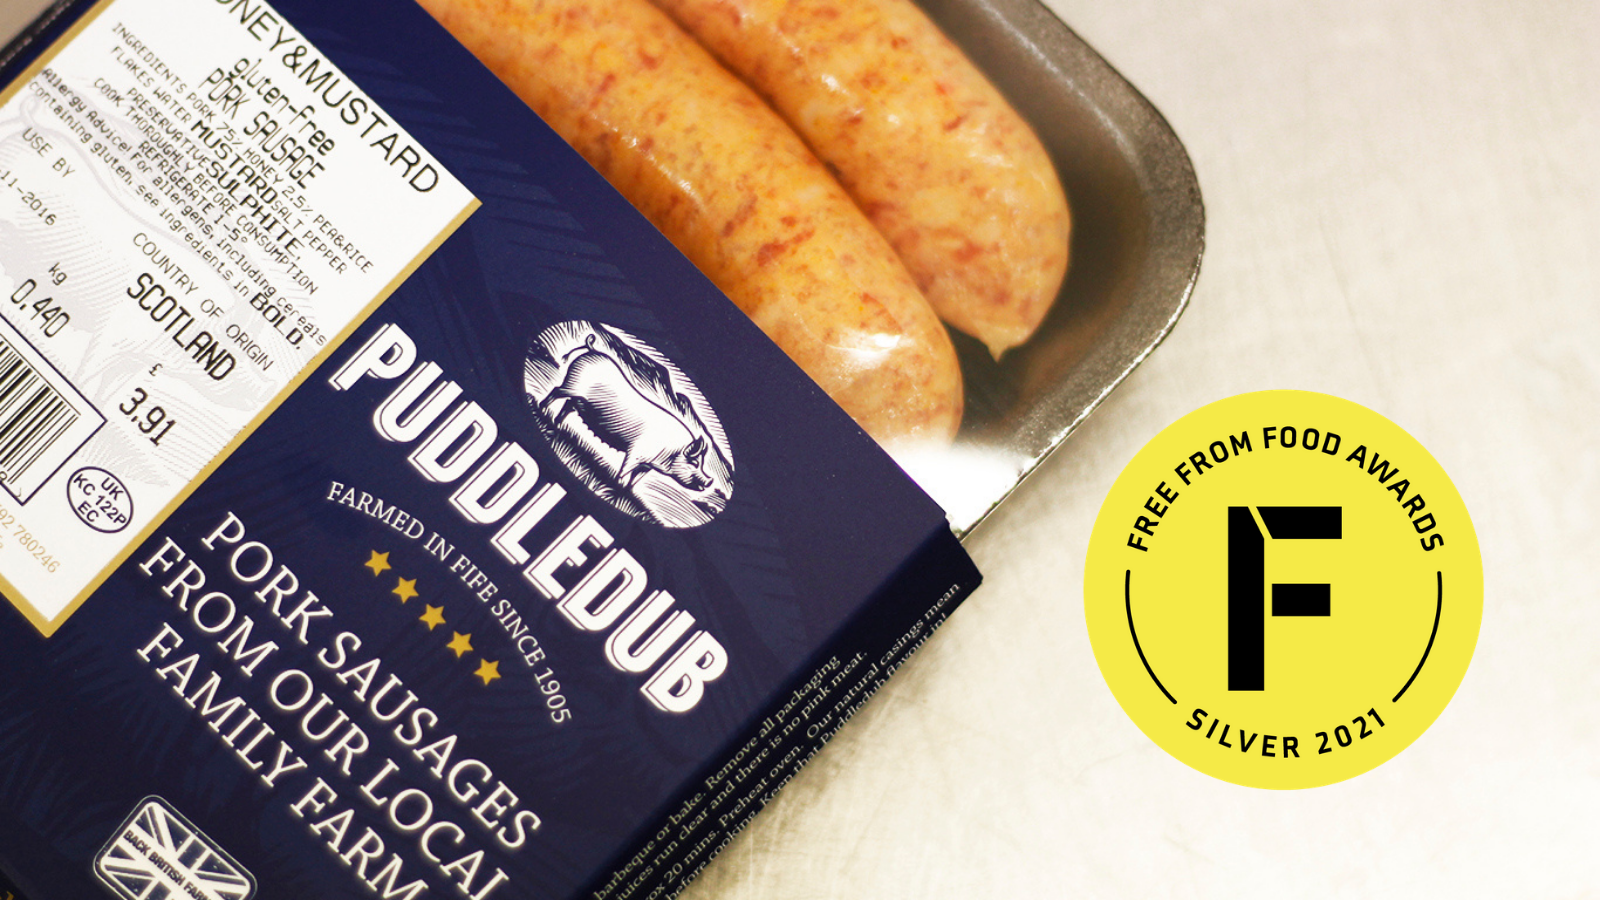 Puddledub Gluten-Free Sausages Scoop Medal at National Free From Food Awards